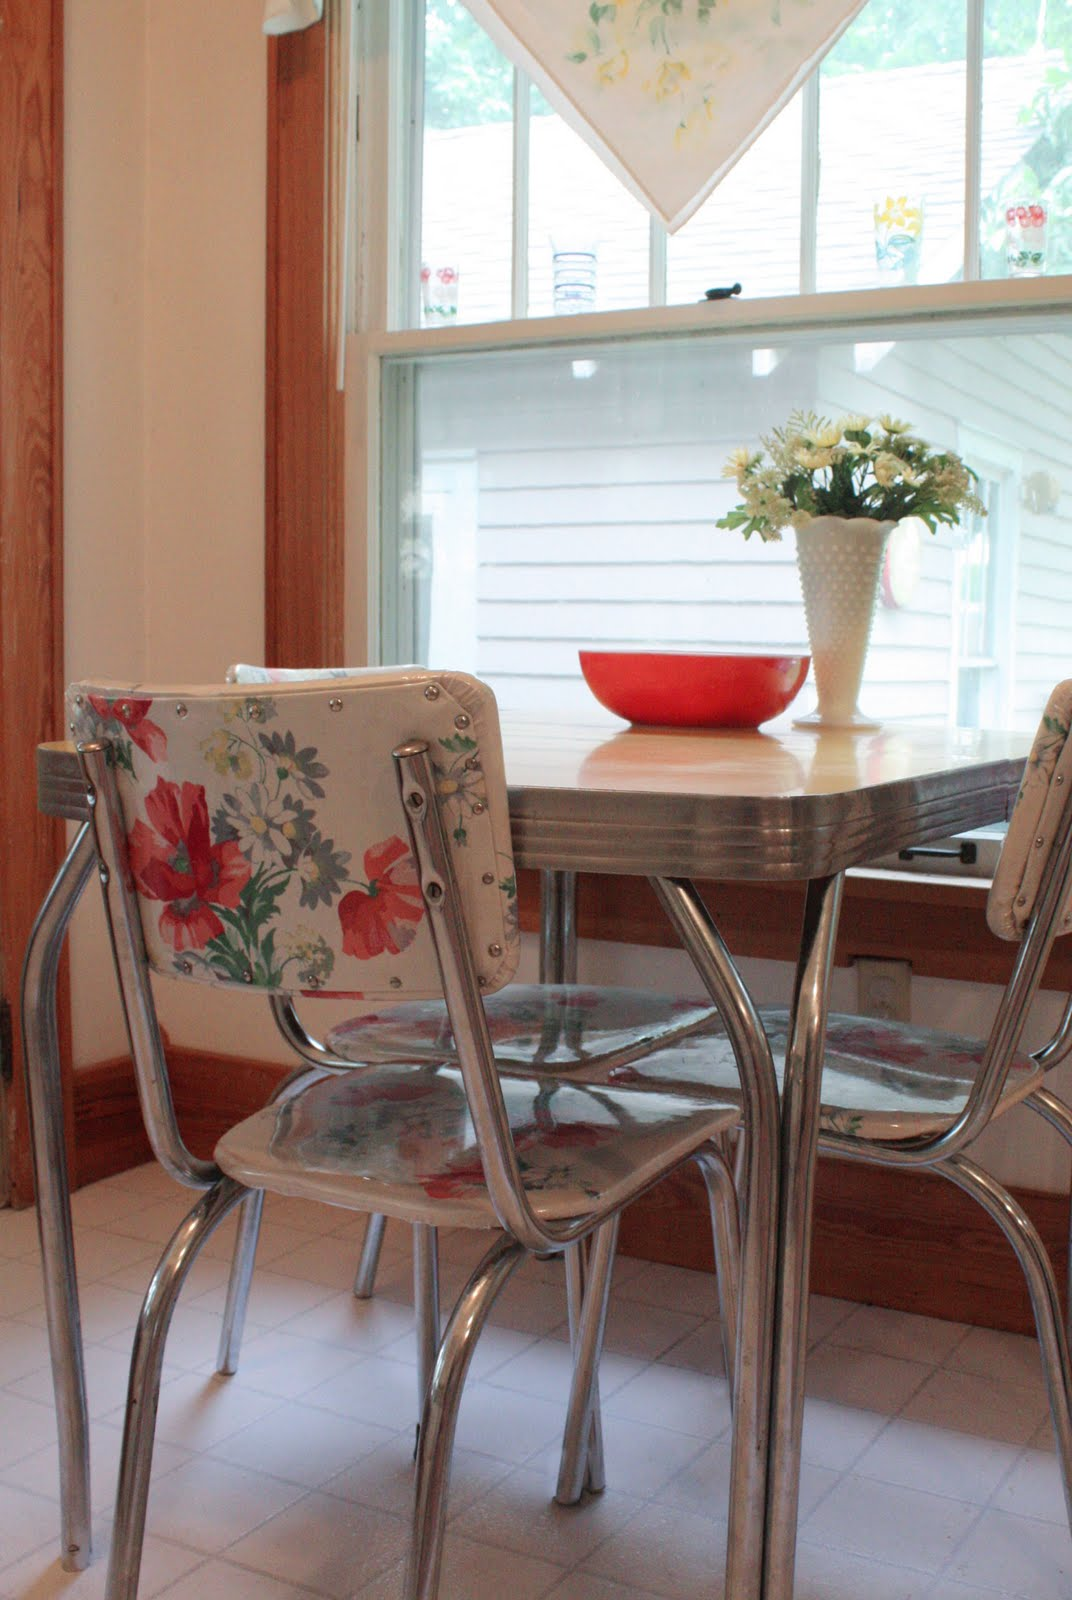 Vintage Kitchen Table Remodeling Projects Amy J Delightful Blog Using Tablecloths Part 2